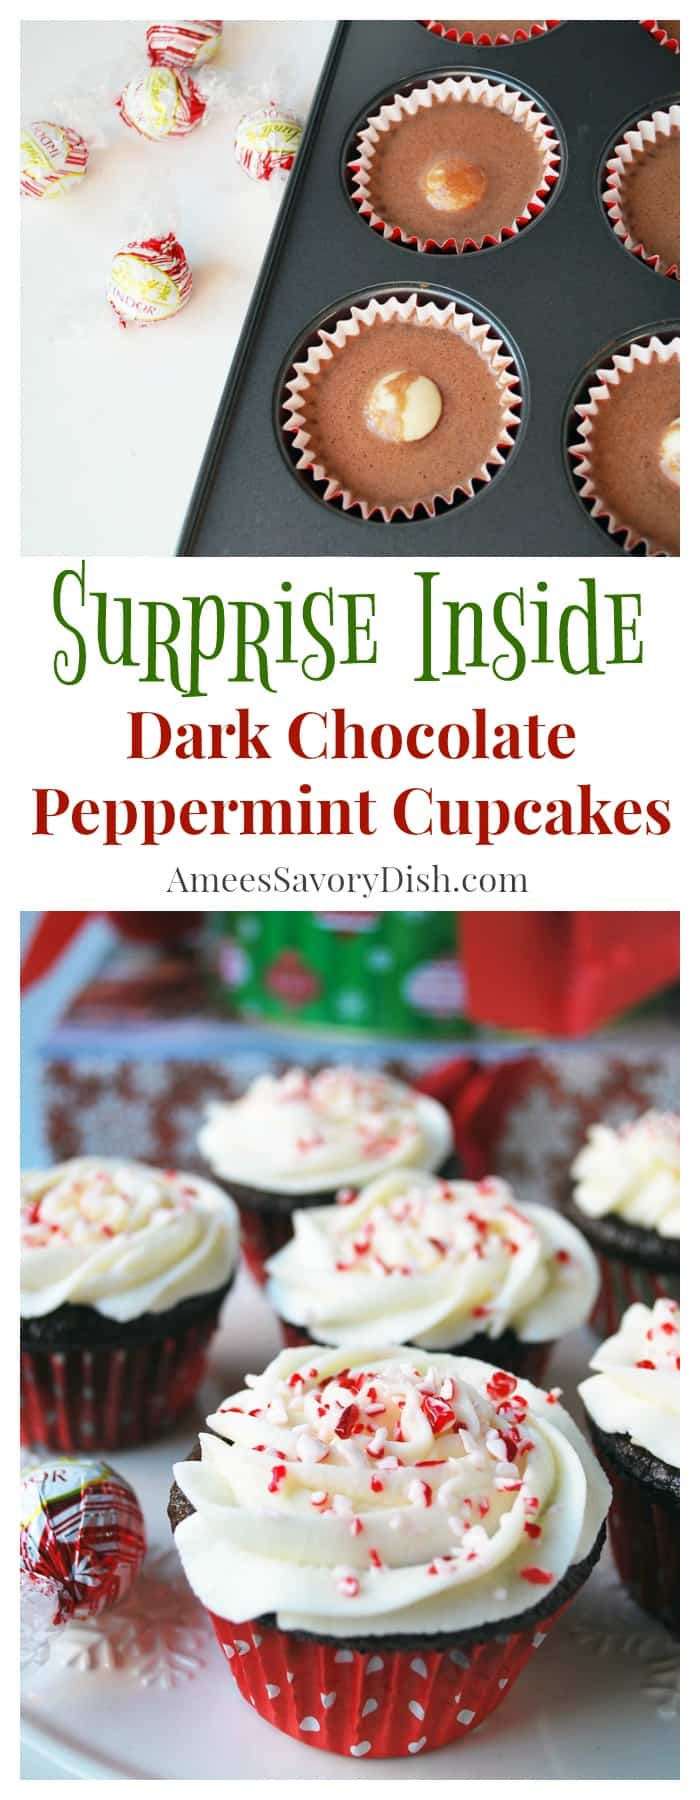 Delicious Surprise-Inside Dark Chocolate Peppermint Cupcakes